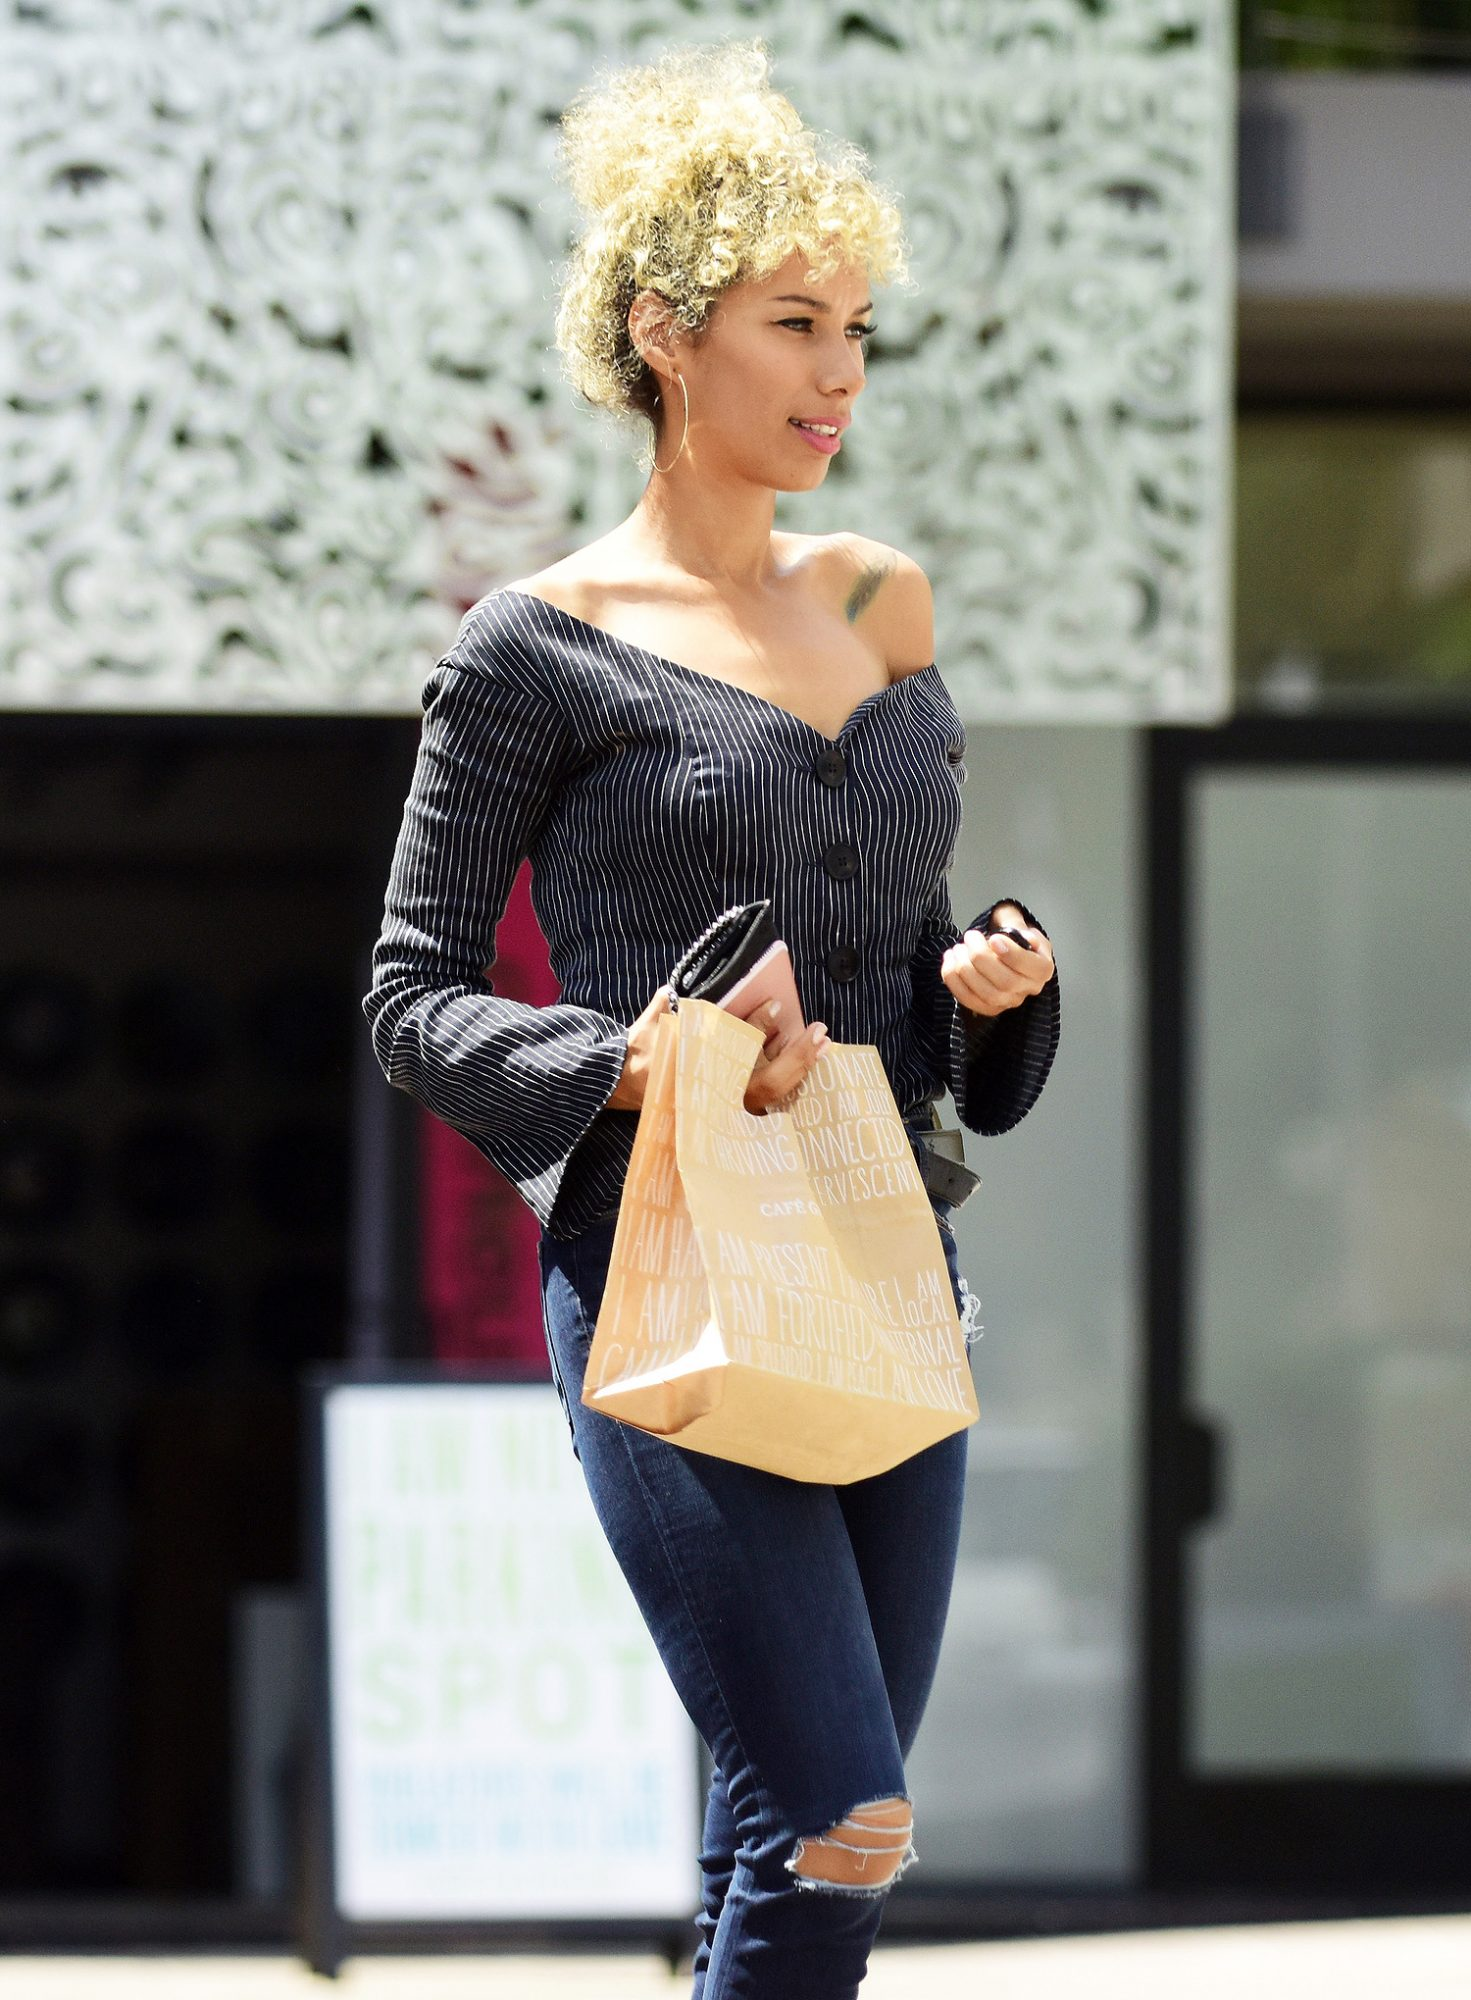 EXCLUSIVE: Leona Lewis steps out looking flawless after a recording session in LA